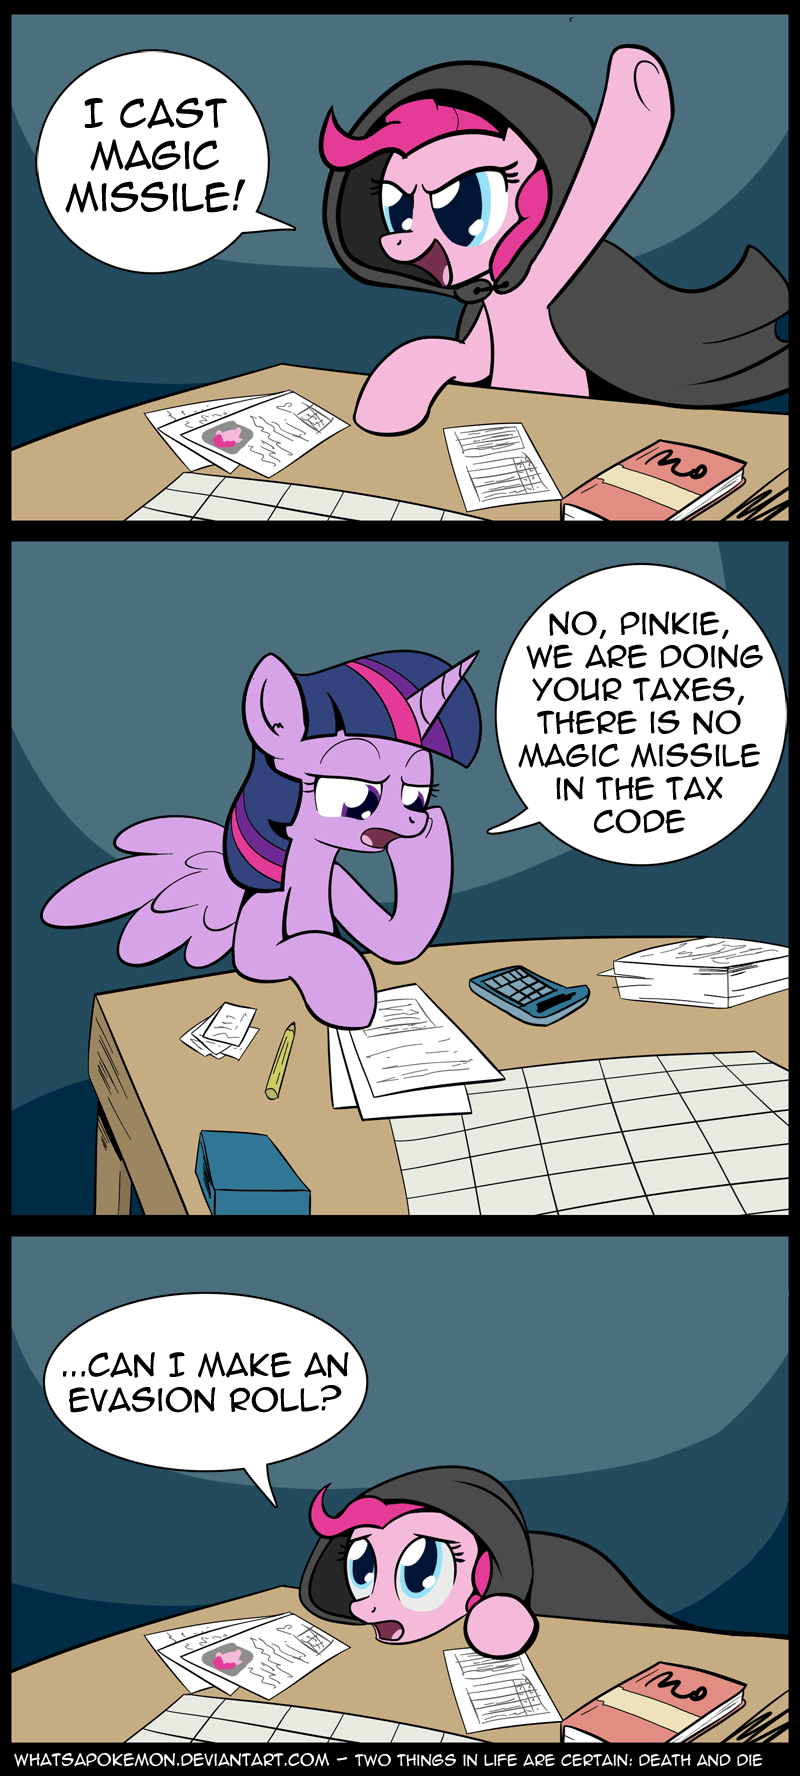 twilight sparkle pinkie pie whatsapokemon dungeons and dragons - 9439239424